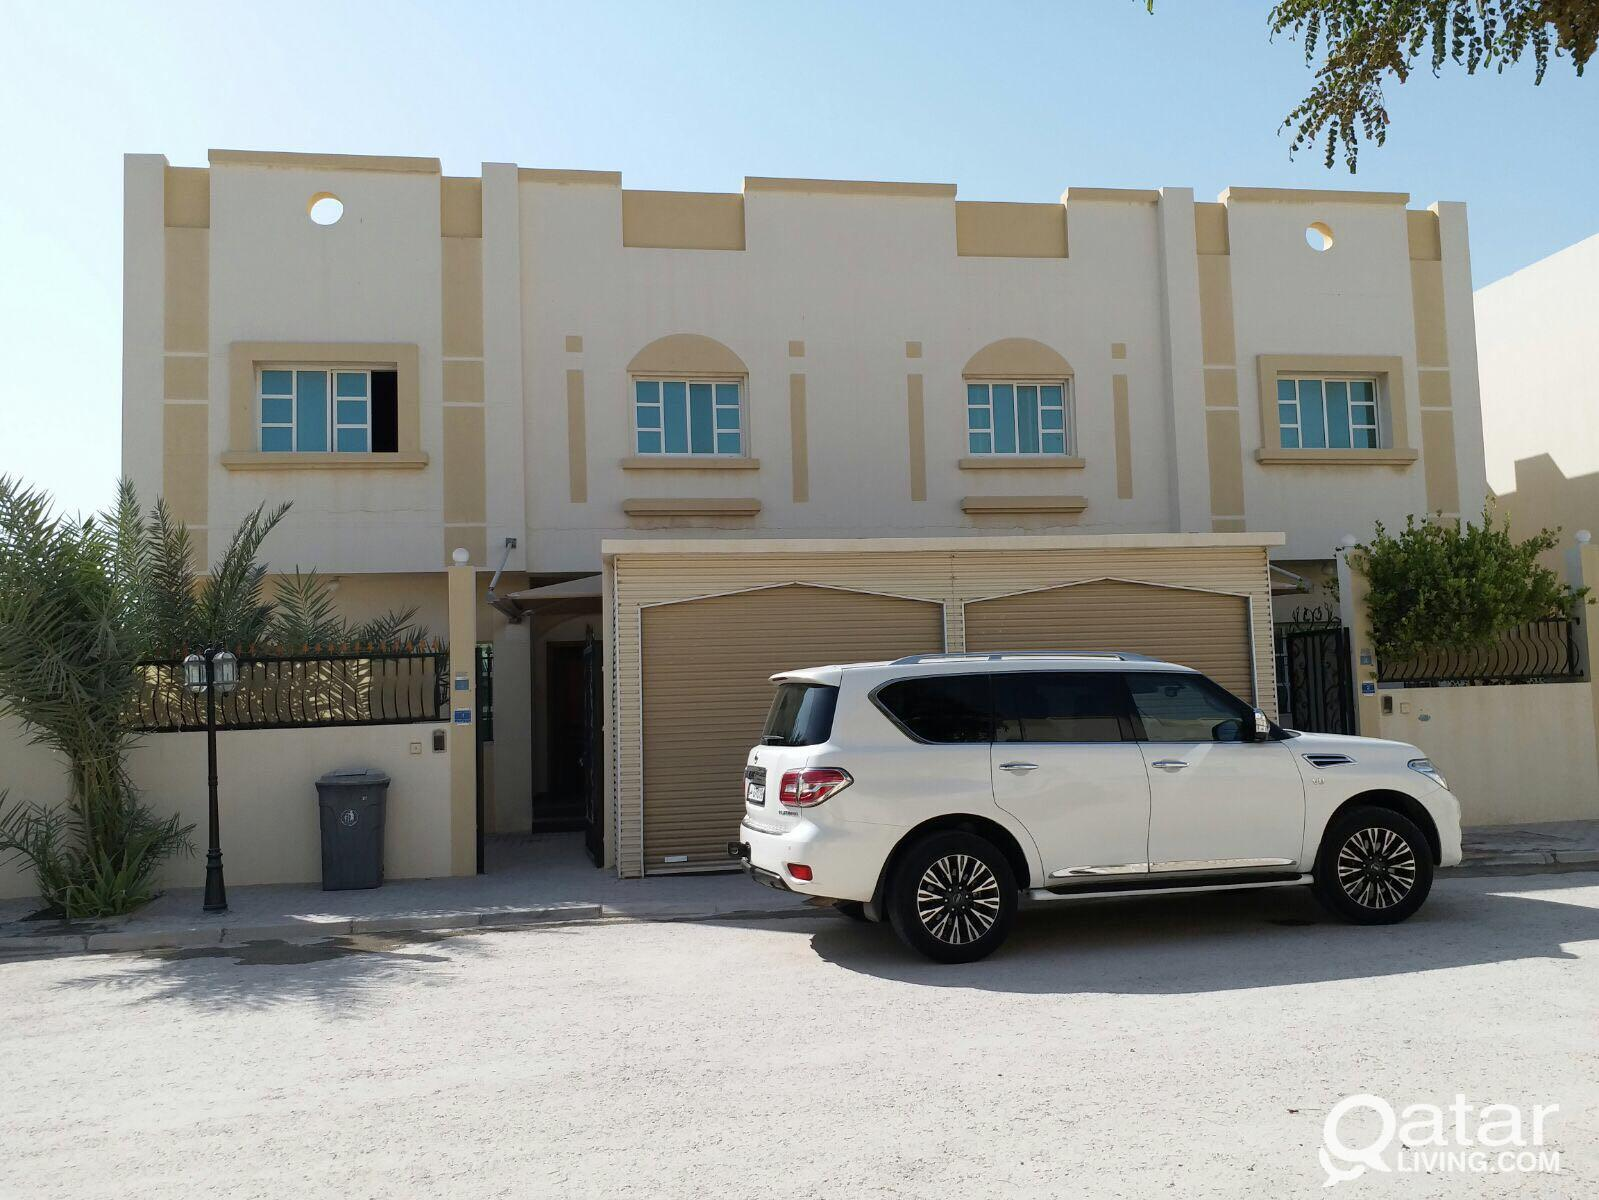 compound villas for rent to bachelors